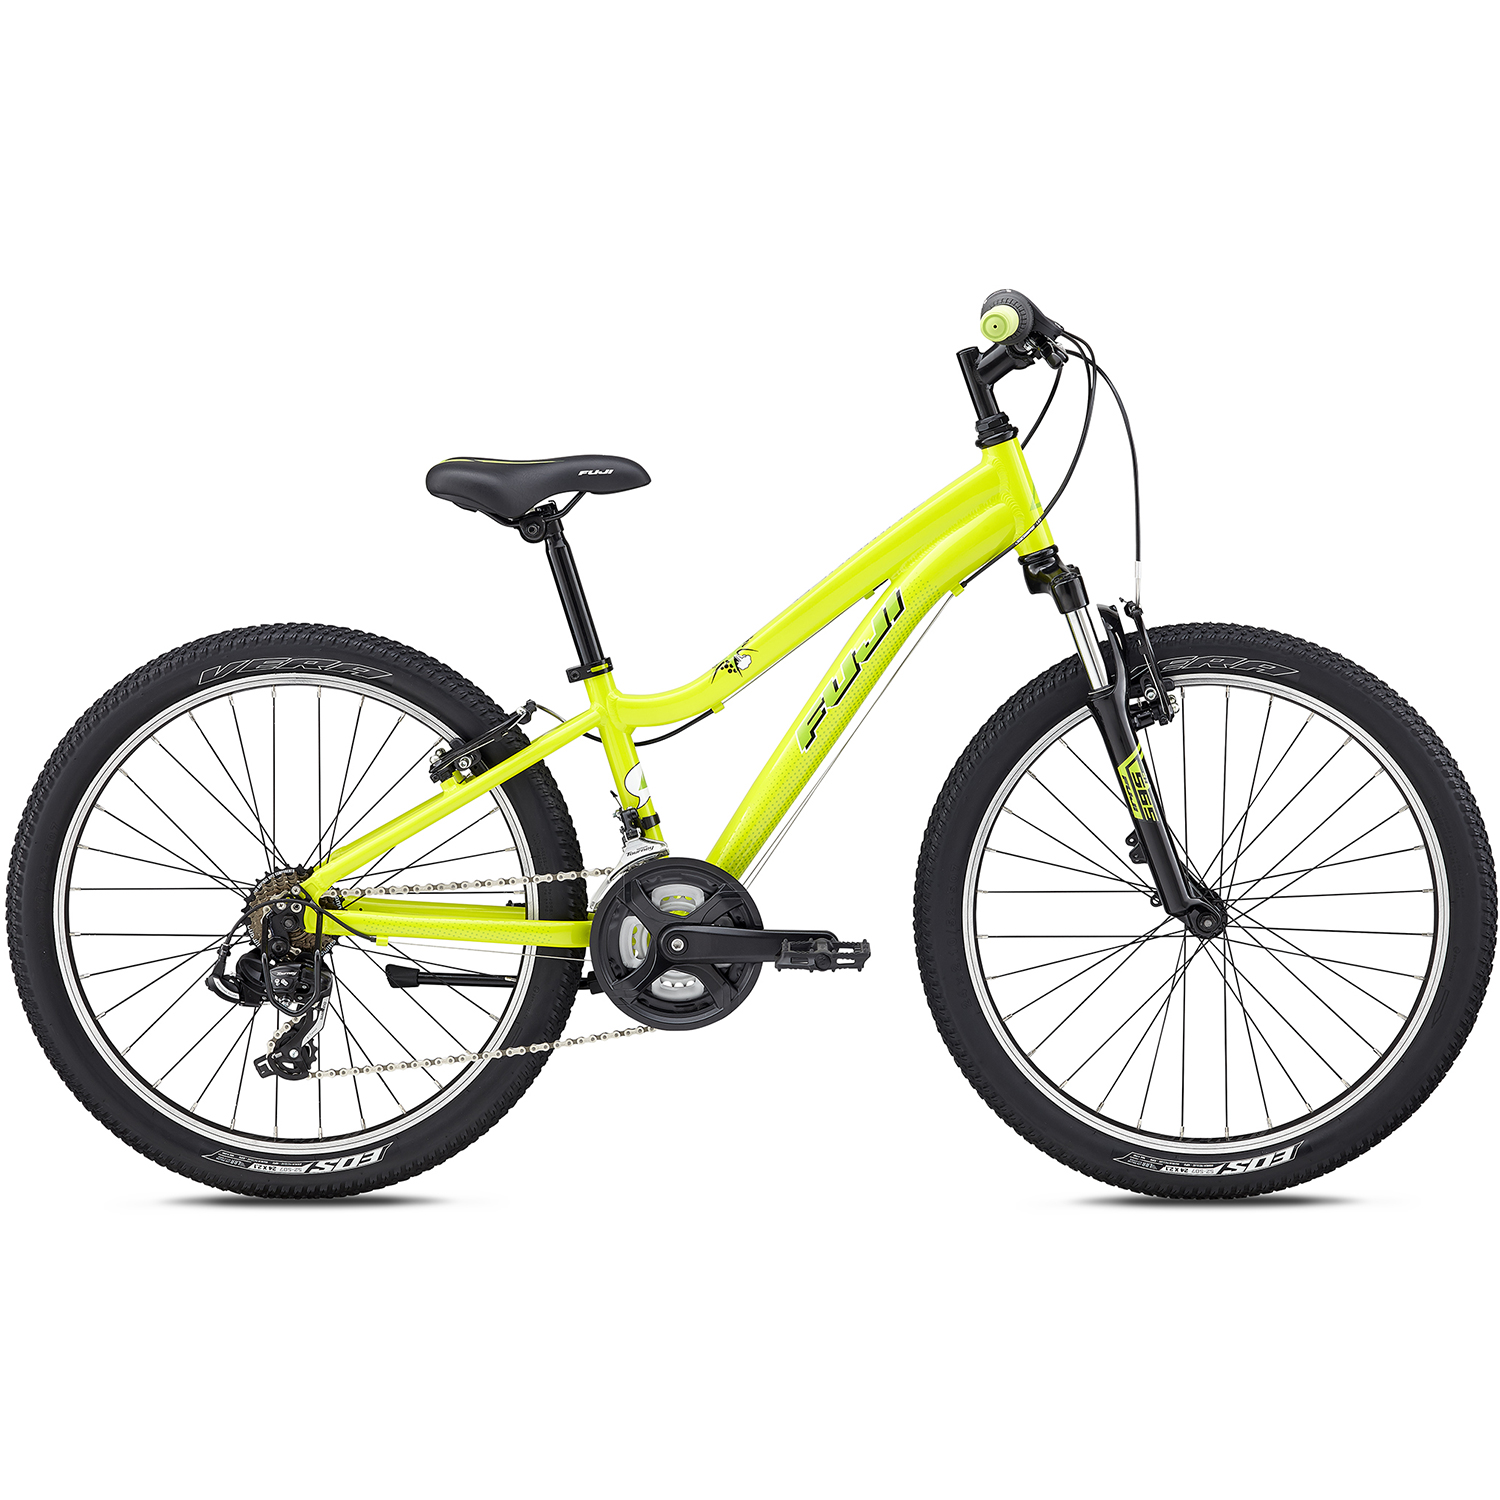 24 zoll jugend mountainbike fuji dynamite 24 comp b junior. Black Bedroom Furniture Sets. Home Design Ideas